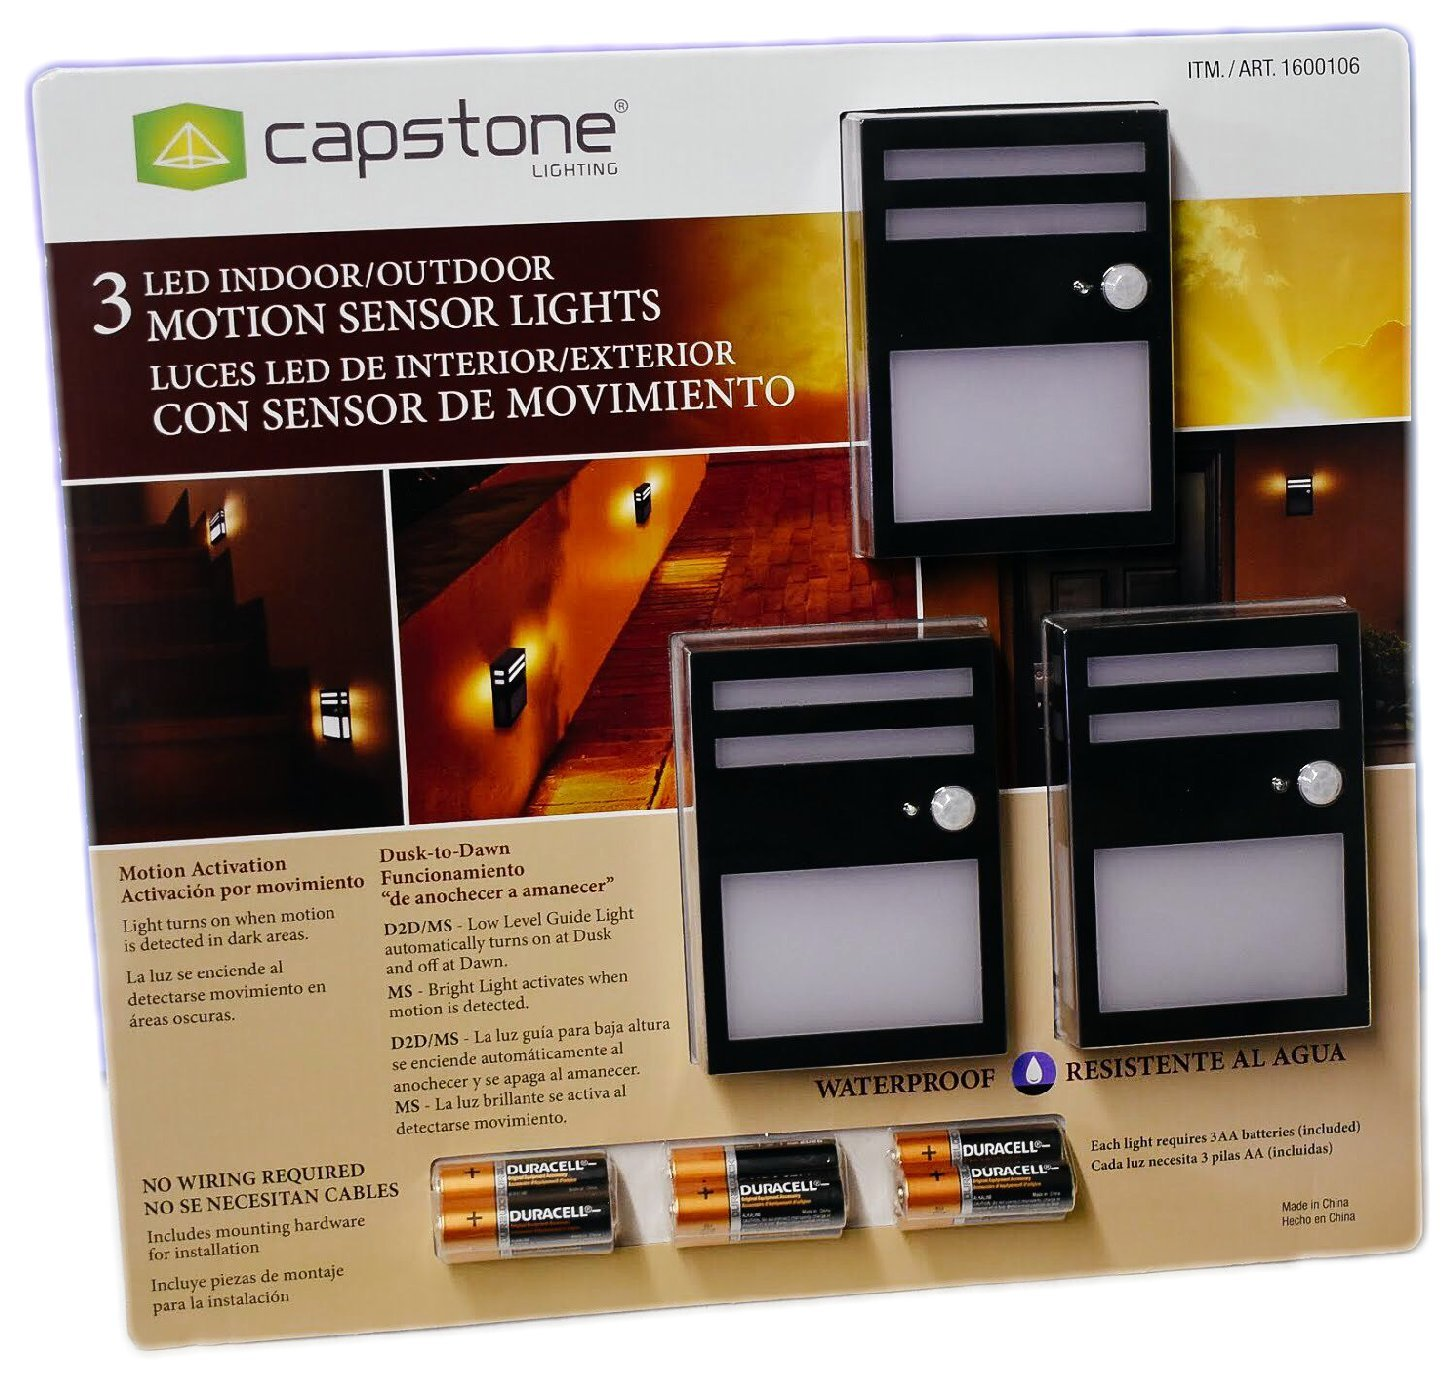 bo-den-cam-ung-capstone-motion-sensor-led-indoor-outdoor-3-pack